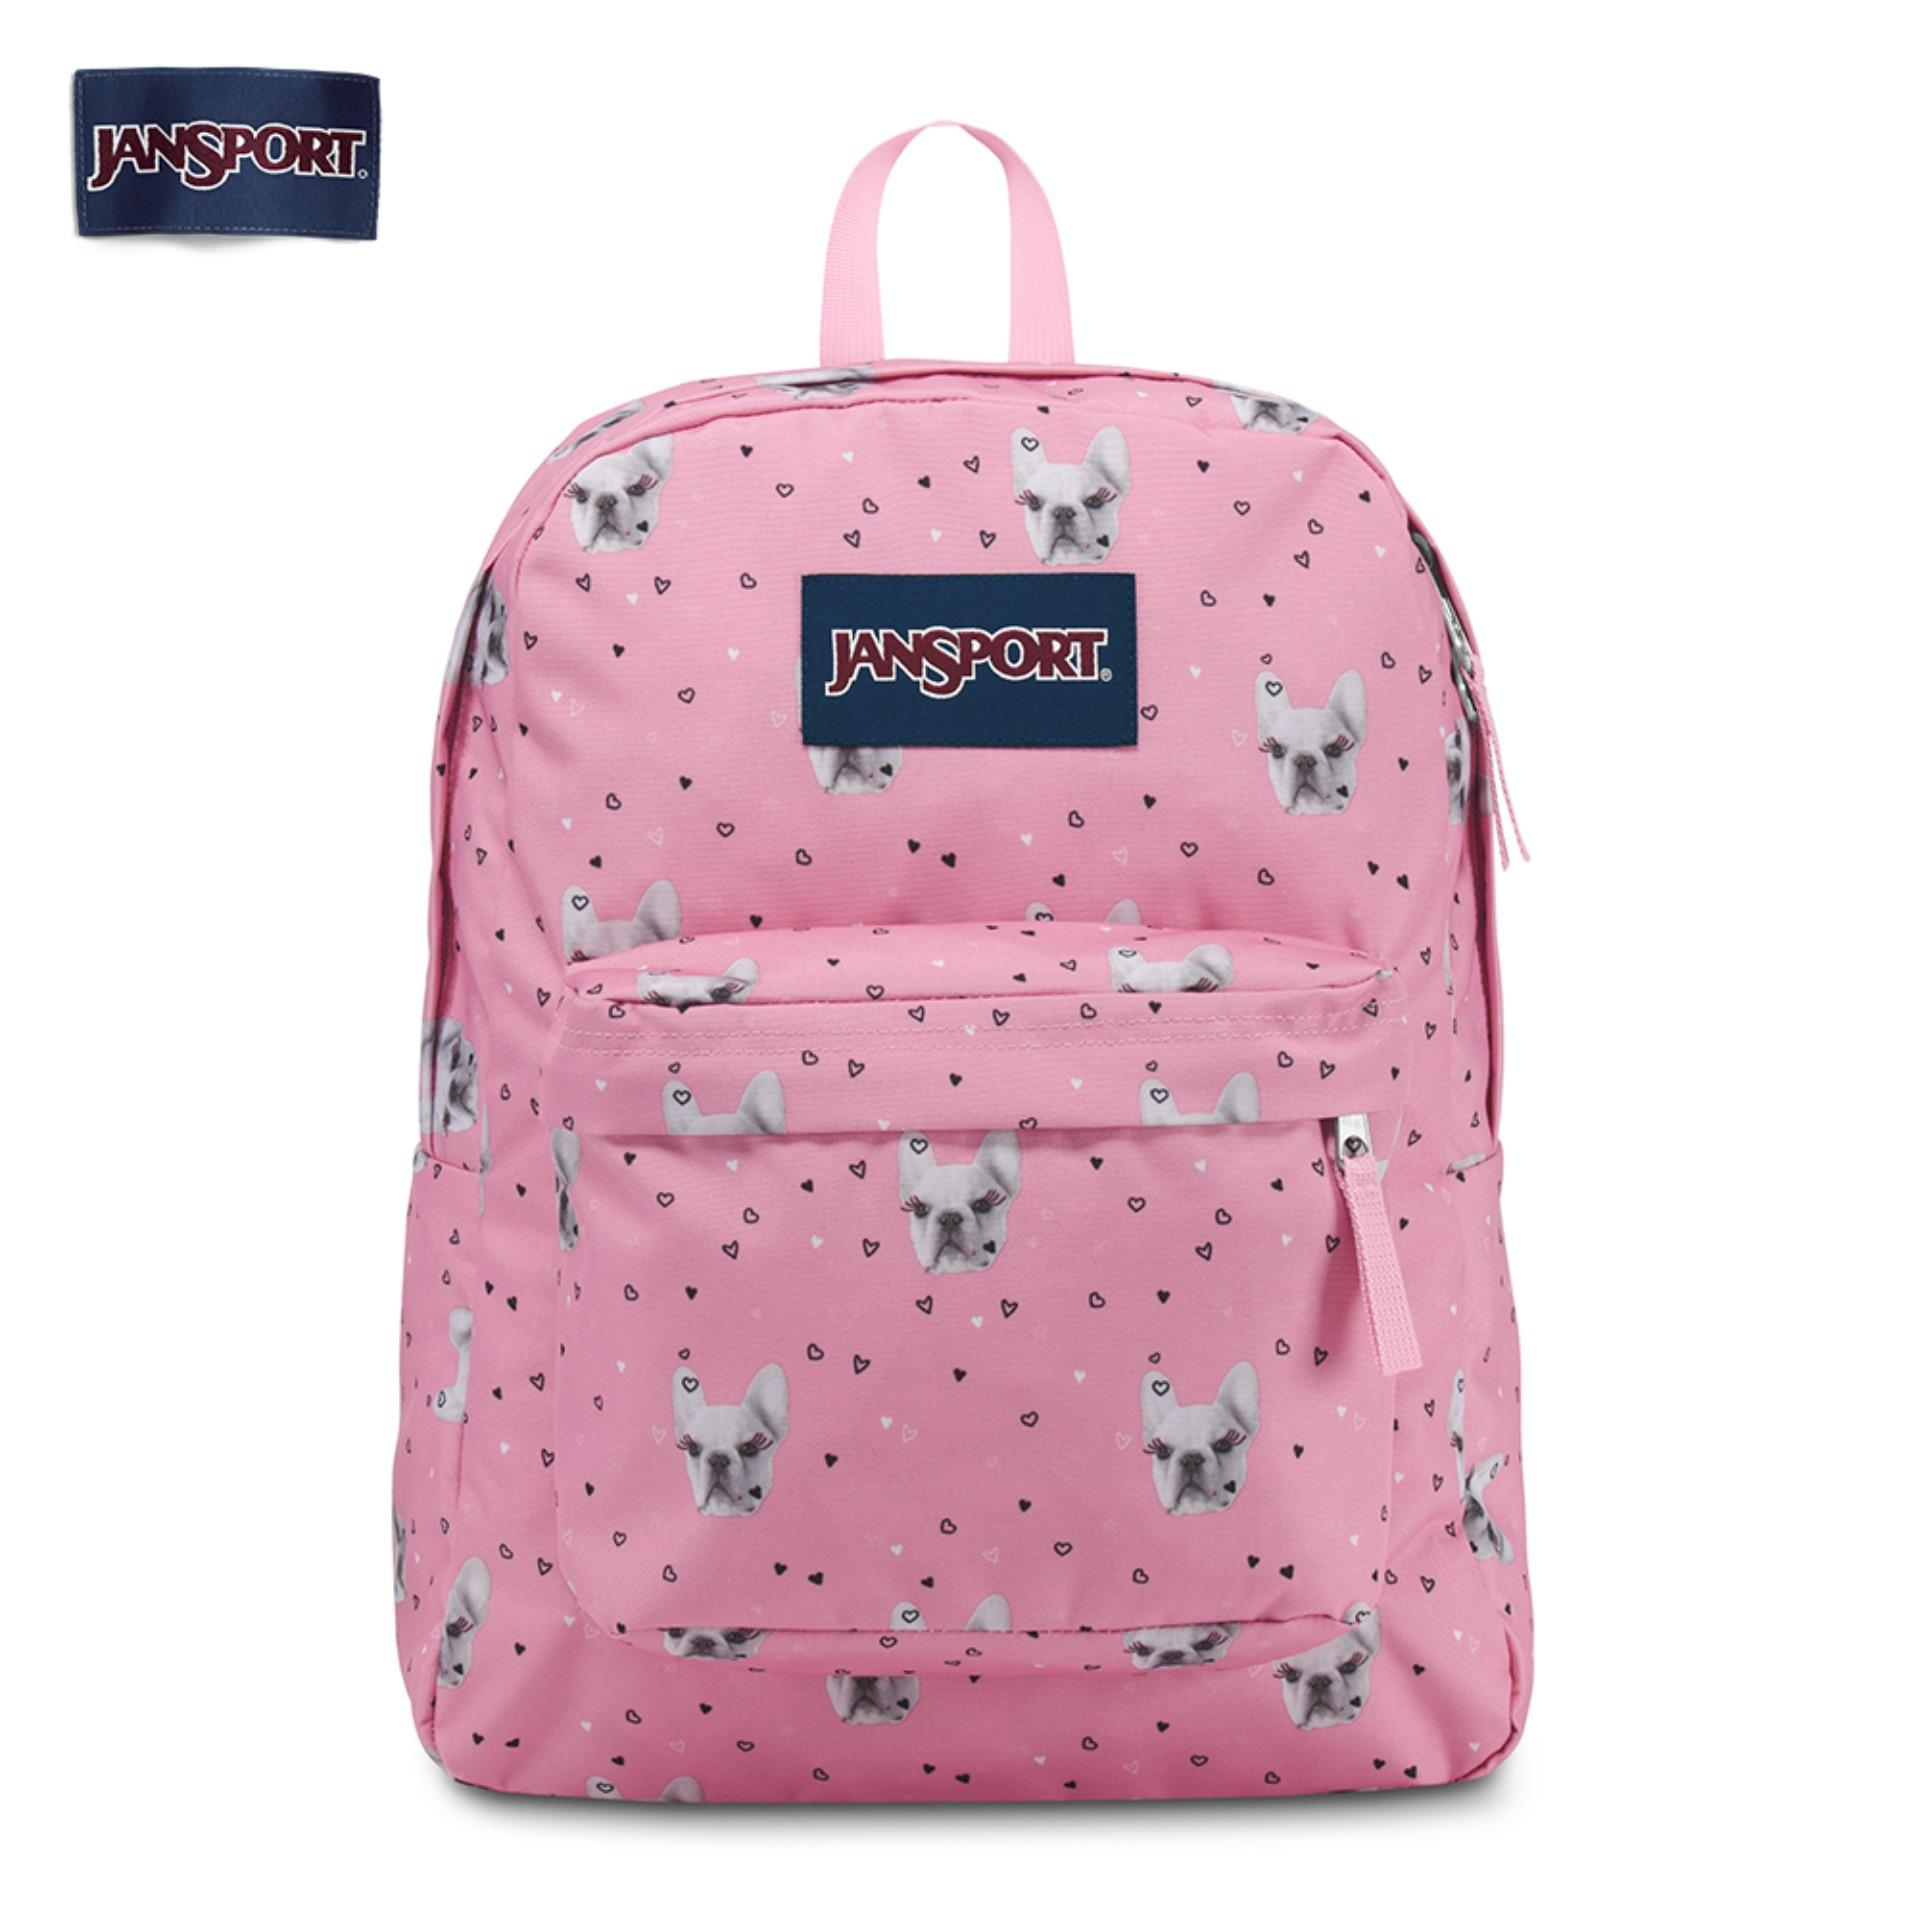 e90f037fb JanSport Womens Classic Superbreak T501 Backpack 600 Denier Polyester  Backpack